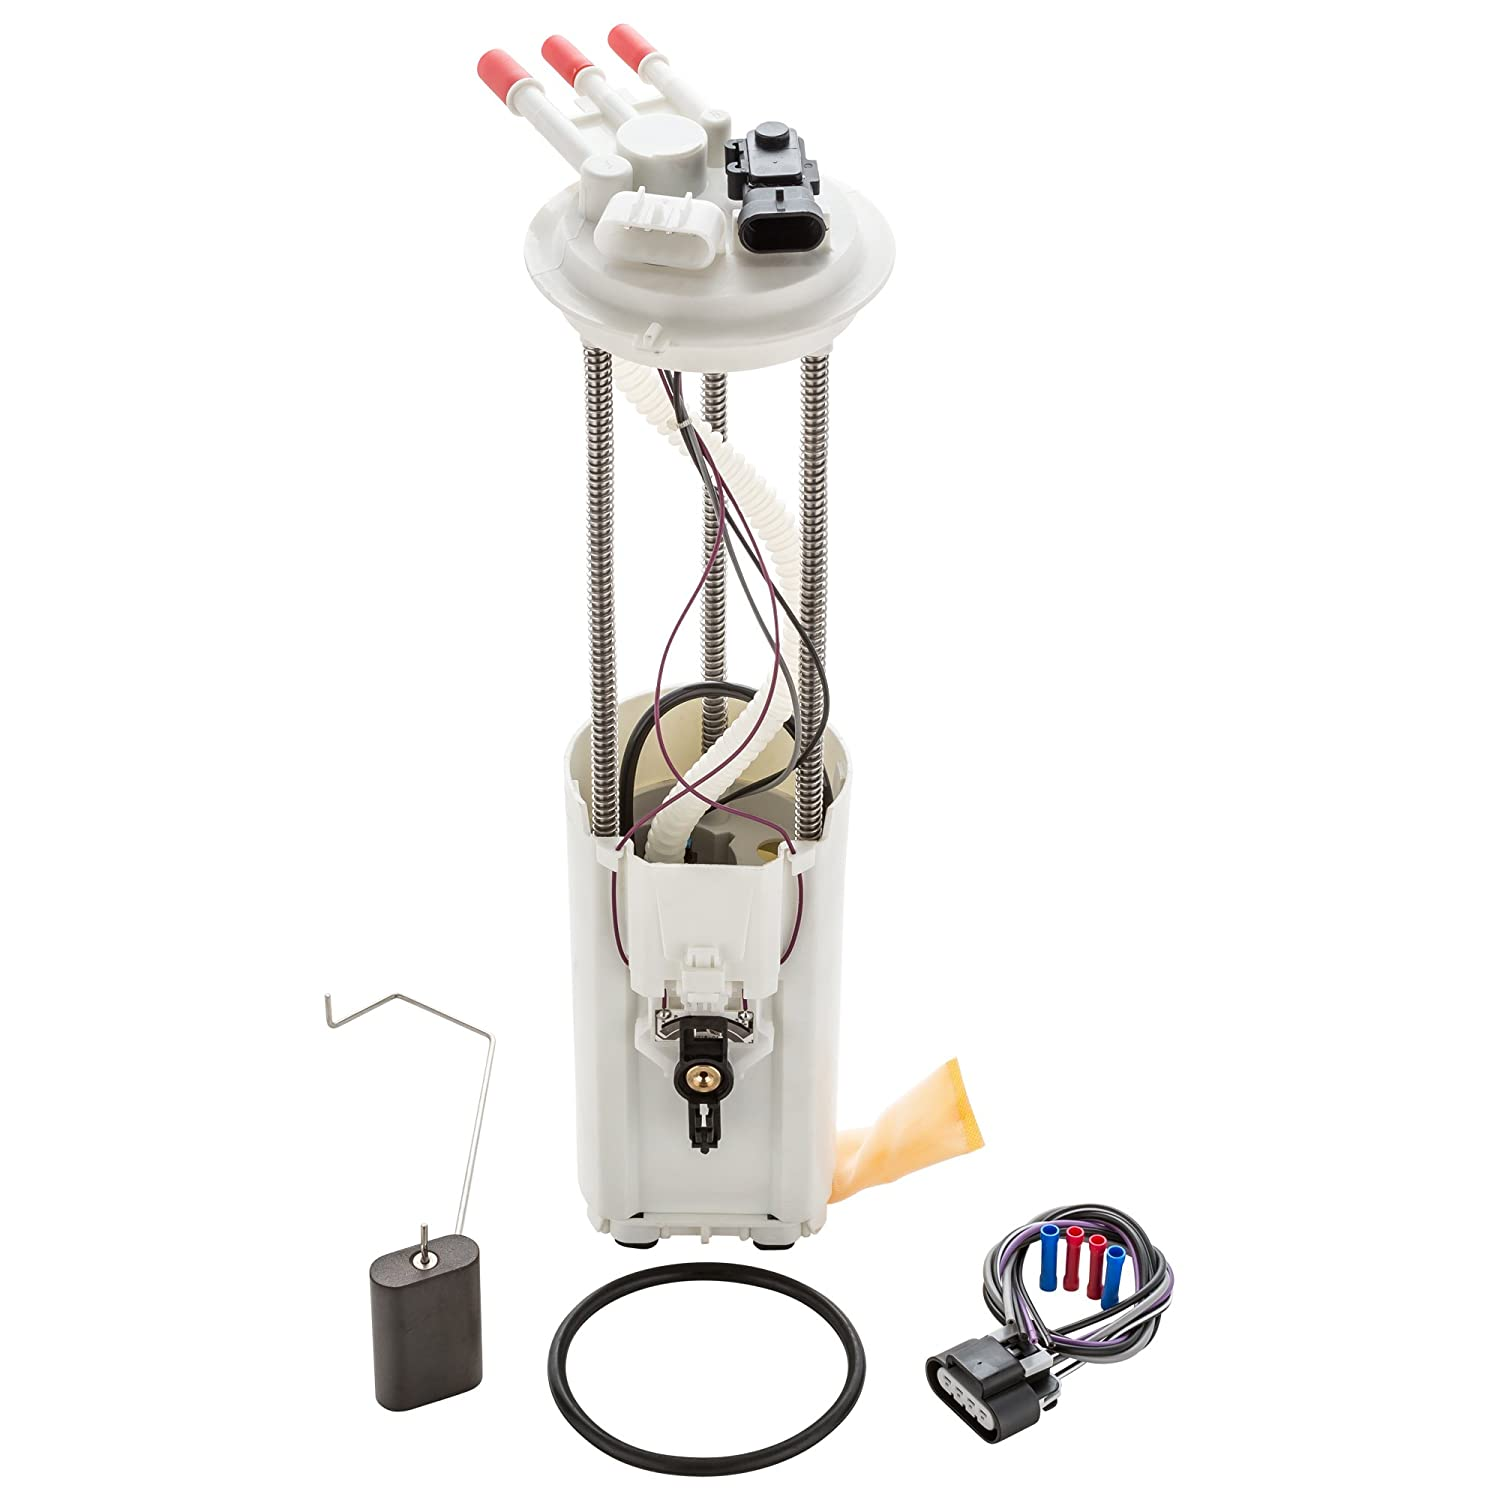 Fuel Pump Ebay Electronics Cars Fashion Auto Cars Price And Release